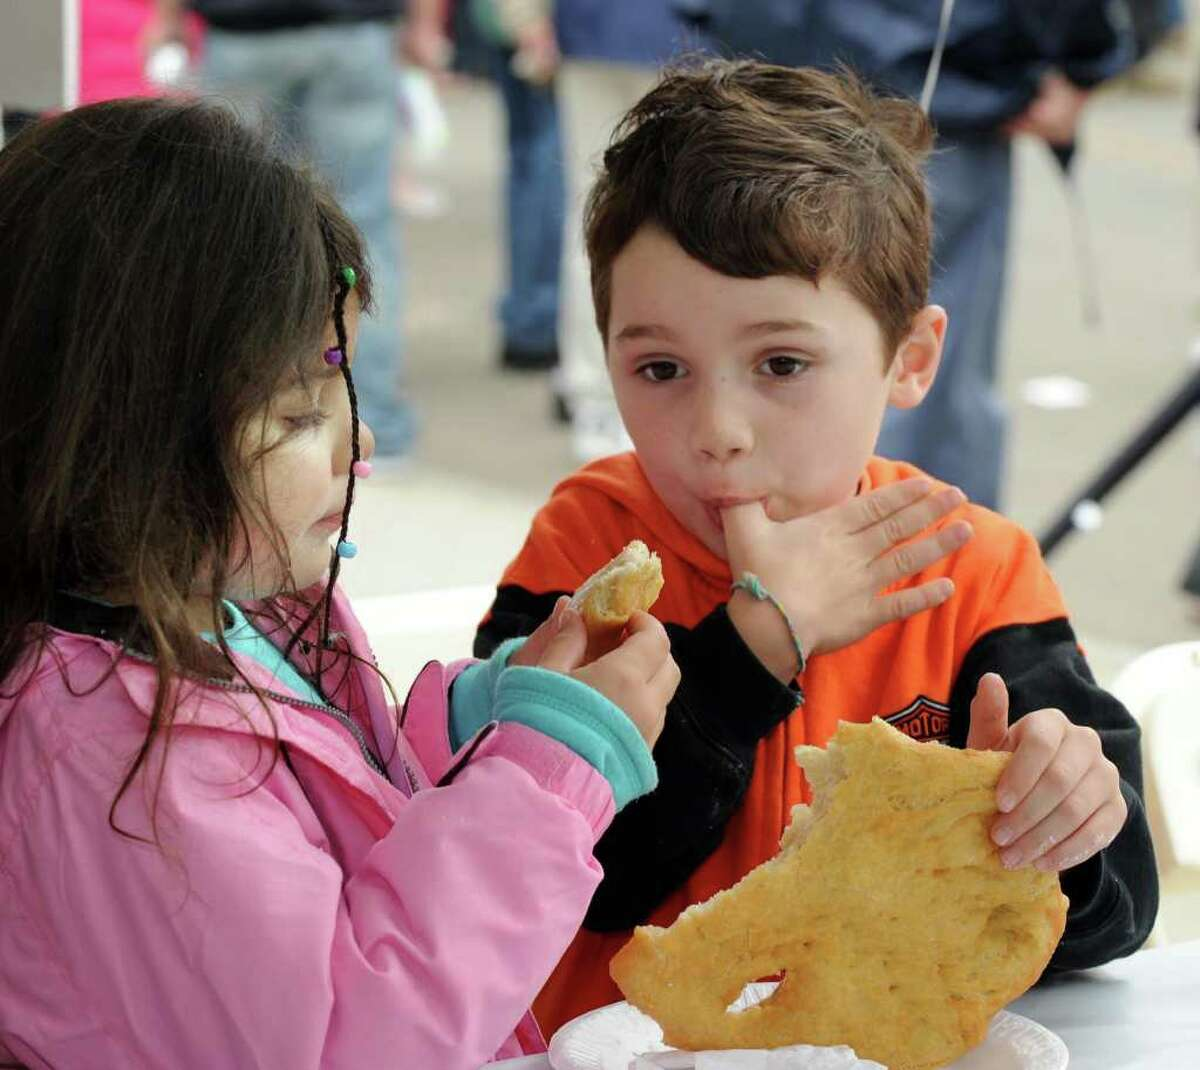 Twins Jordan and Marcus Dupree of Danbury share a fried dough at the Taste of Danbury Sunday, Sept. 12, 2010.